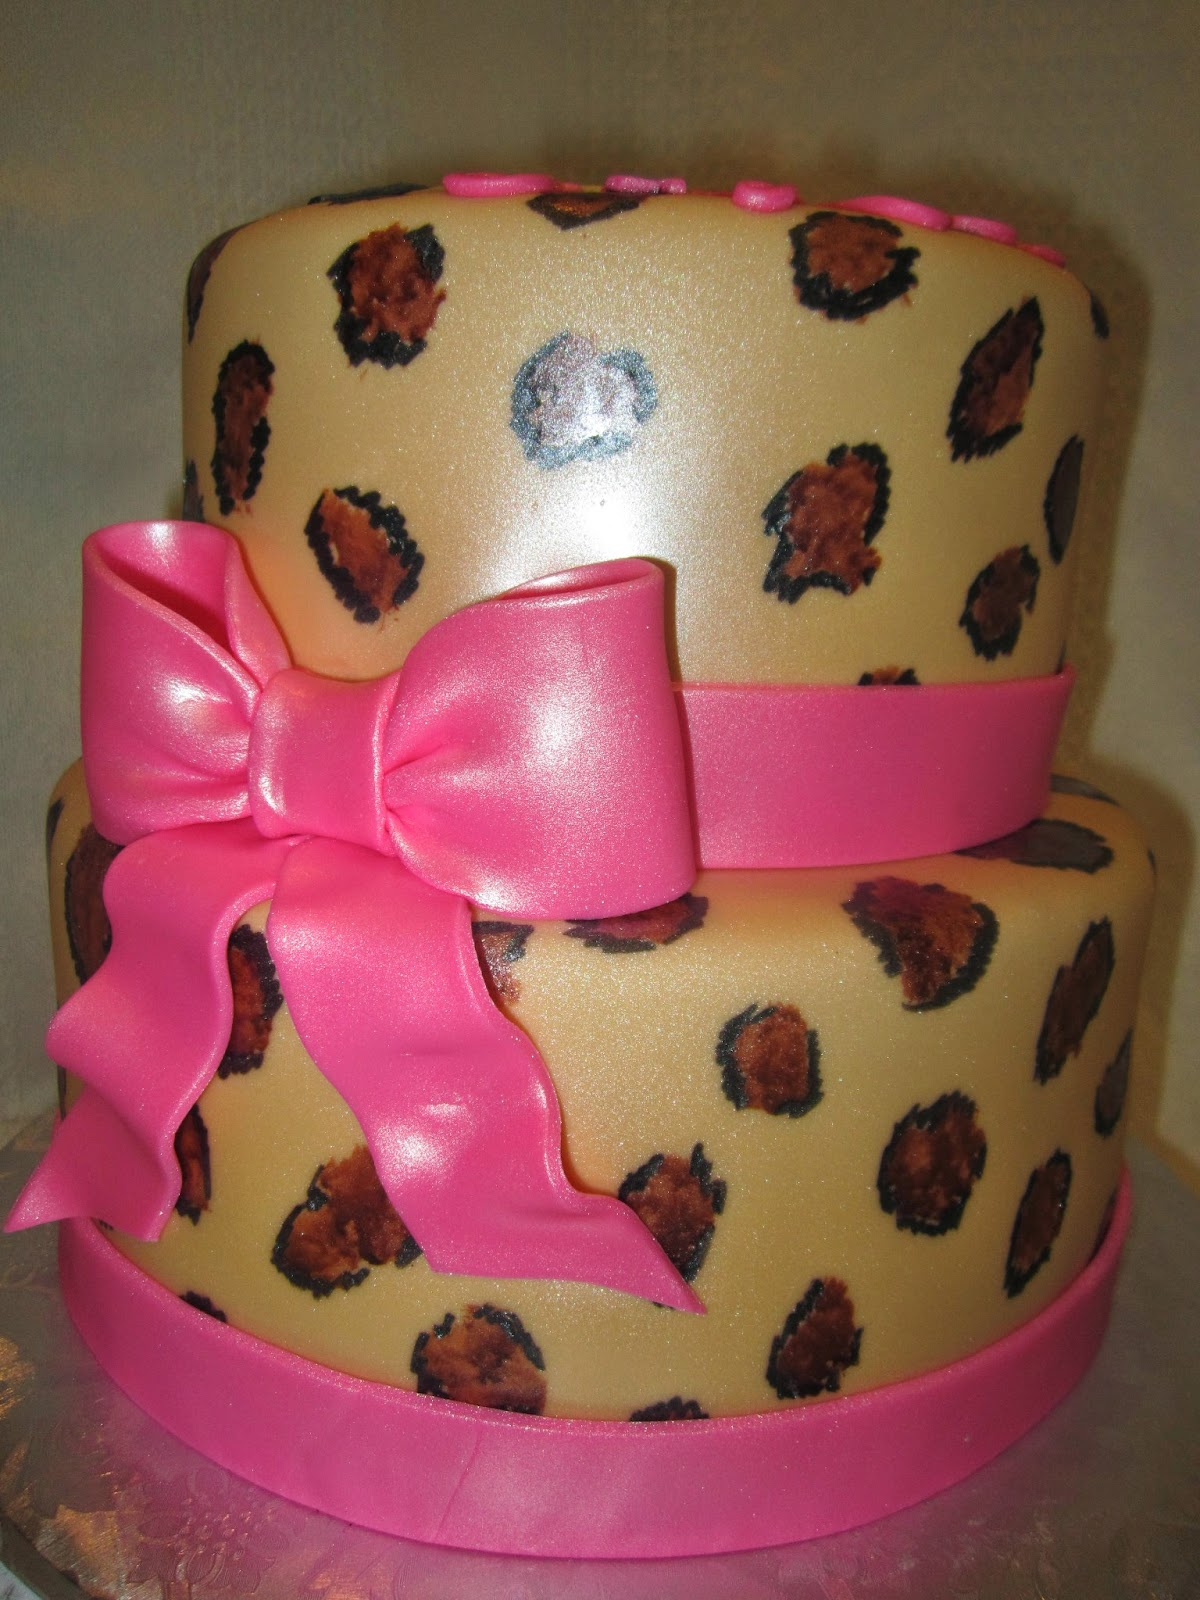 Mymonicakes Hello Kitty Cakes With Leopard Print And More